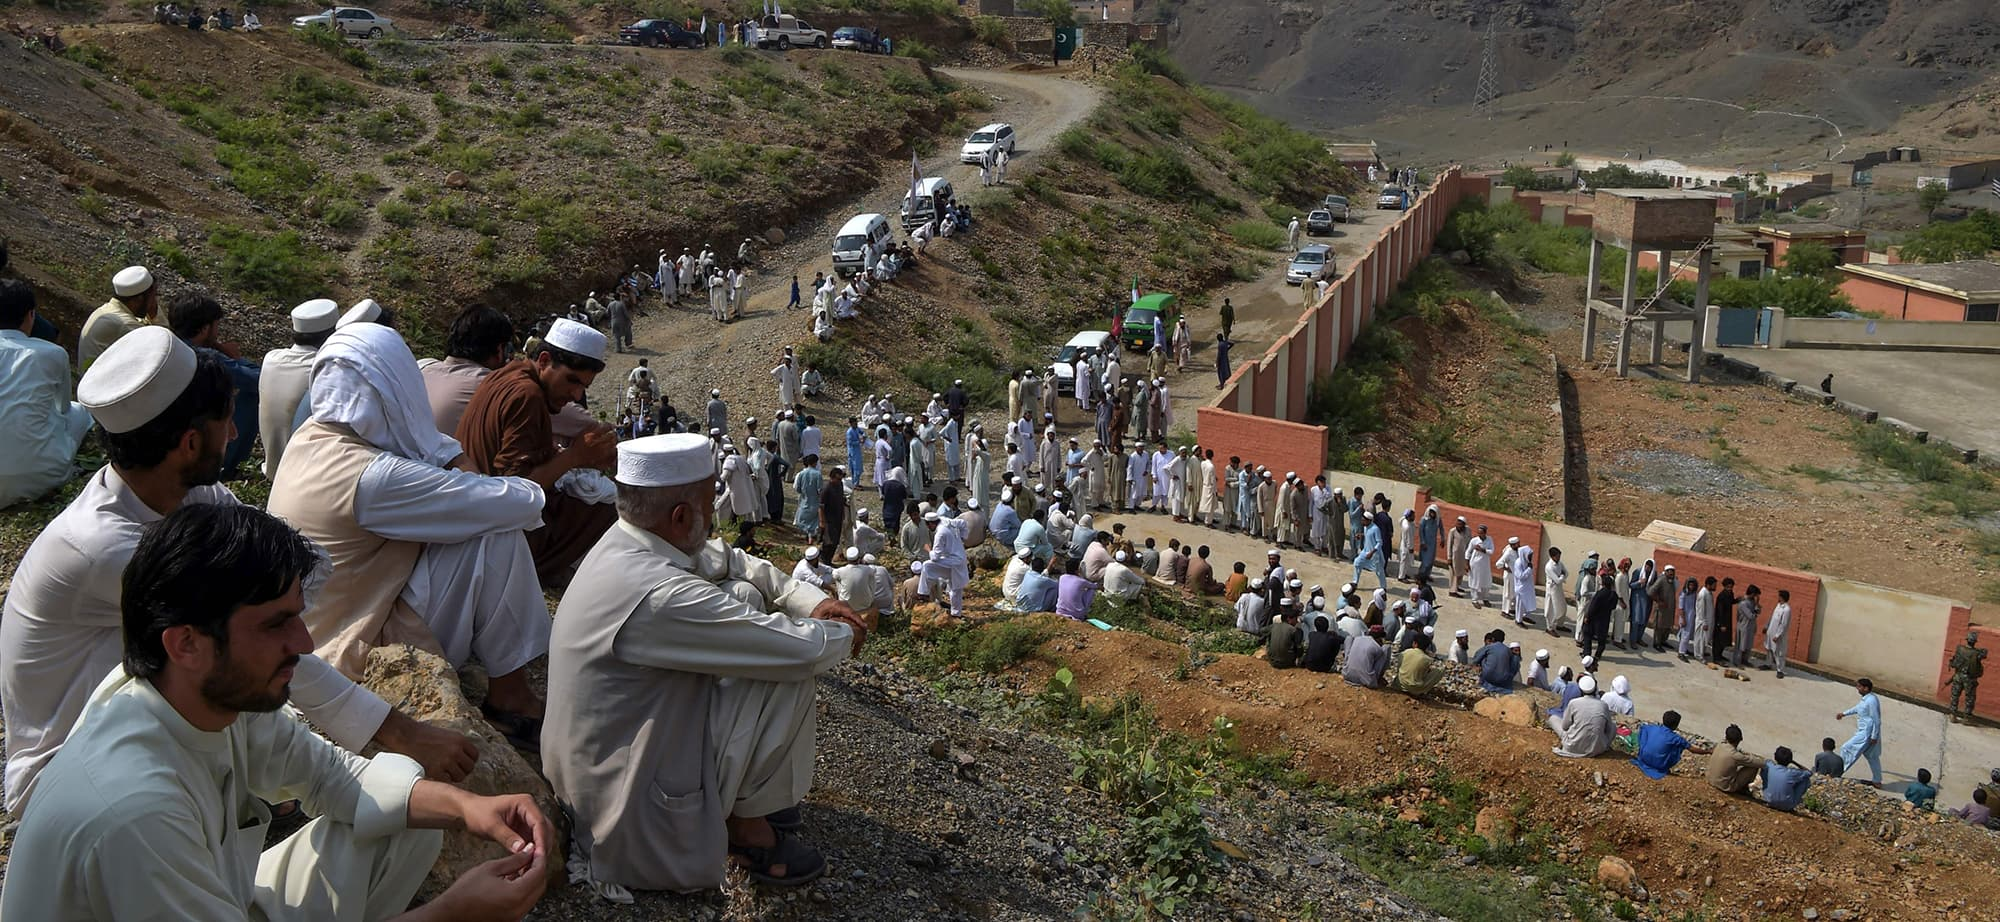 Tribesmen line up to cast their vote outside a polling station for the first provincial elections in Jamrud, a town of the Khyber Pakhtunkhwa province on July 20, 2019. - Pakistan's tribal areas held their first ever provincial elections on July 20 amid high security, a key step bringing the northwestern region into the political mainstream after years of turmoil fuelled by militancy. (Photo by ABDUL MAJEED / AFP) — AFP or licensors